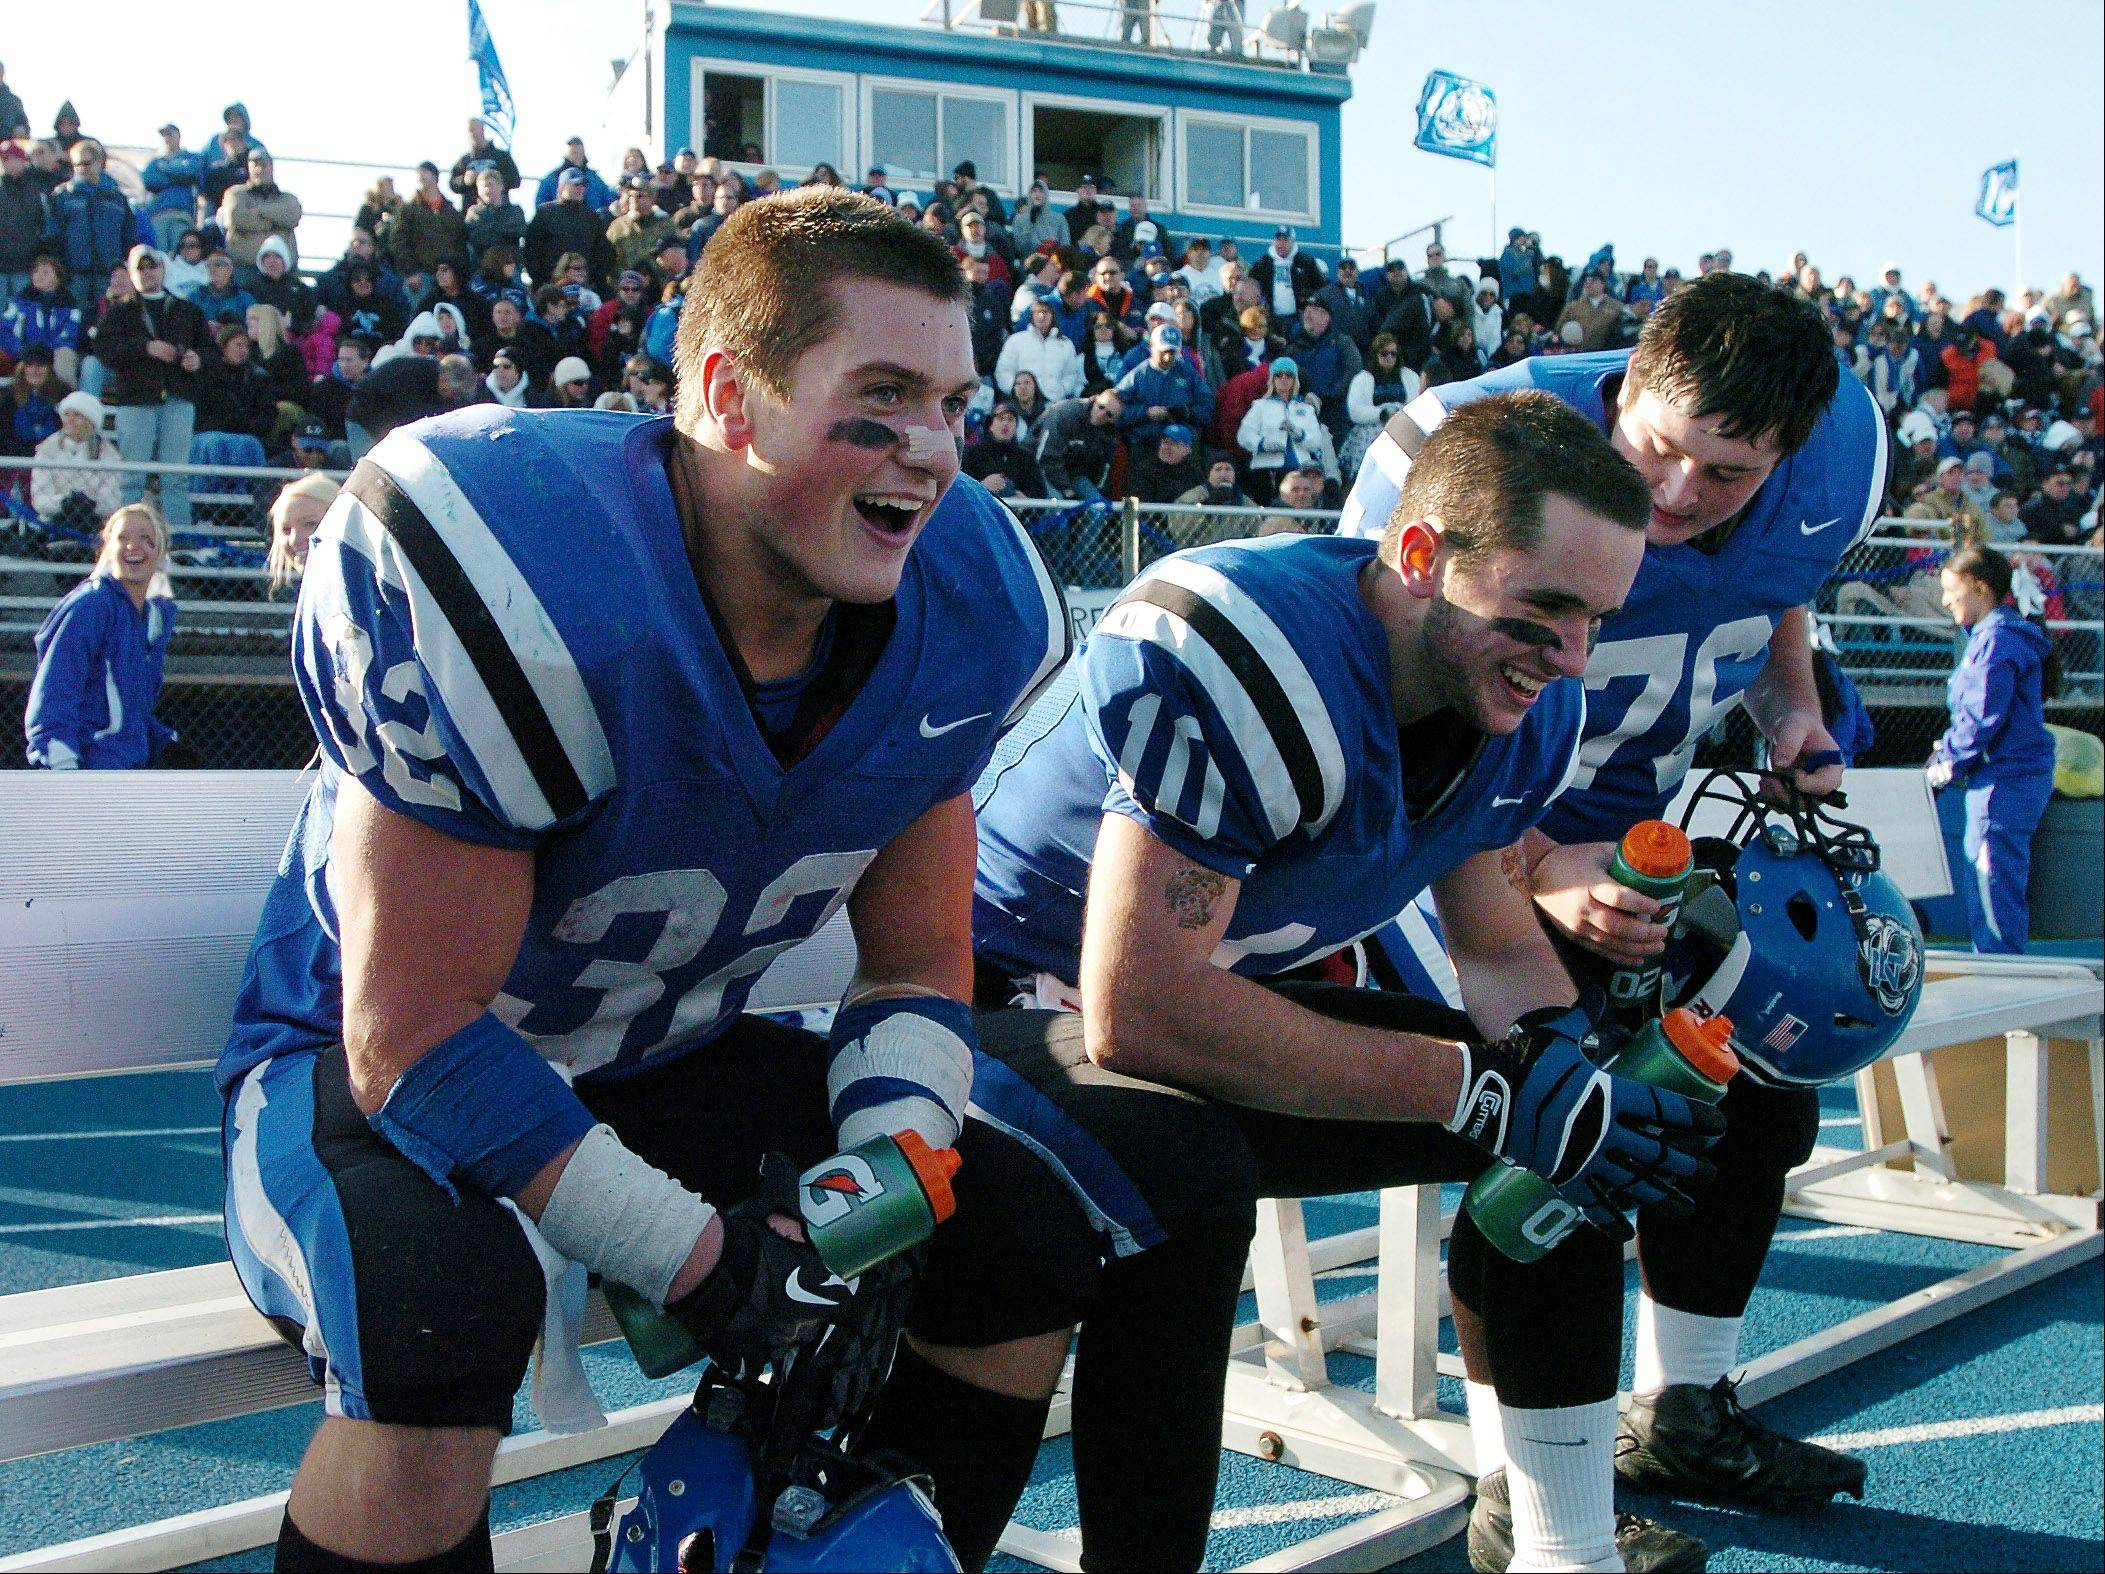 Running back Connor Schrader, left, celebrates on the bench with Jake Stauner, after scoring his fifth touchdown of the day during Lake Zurich's Class 7A playoff victory over visiting Crystal Lake South.